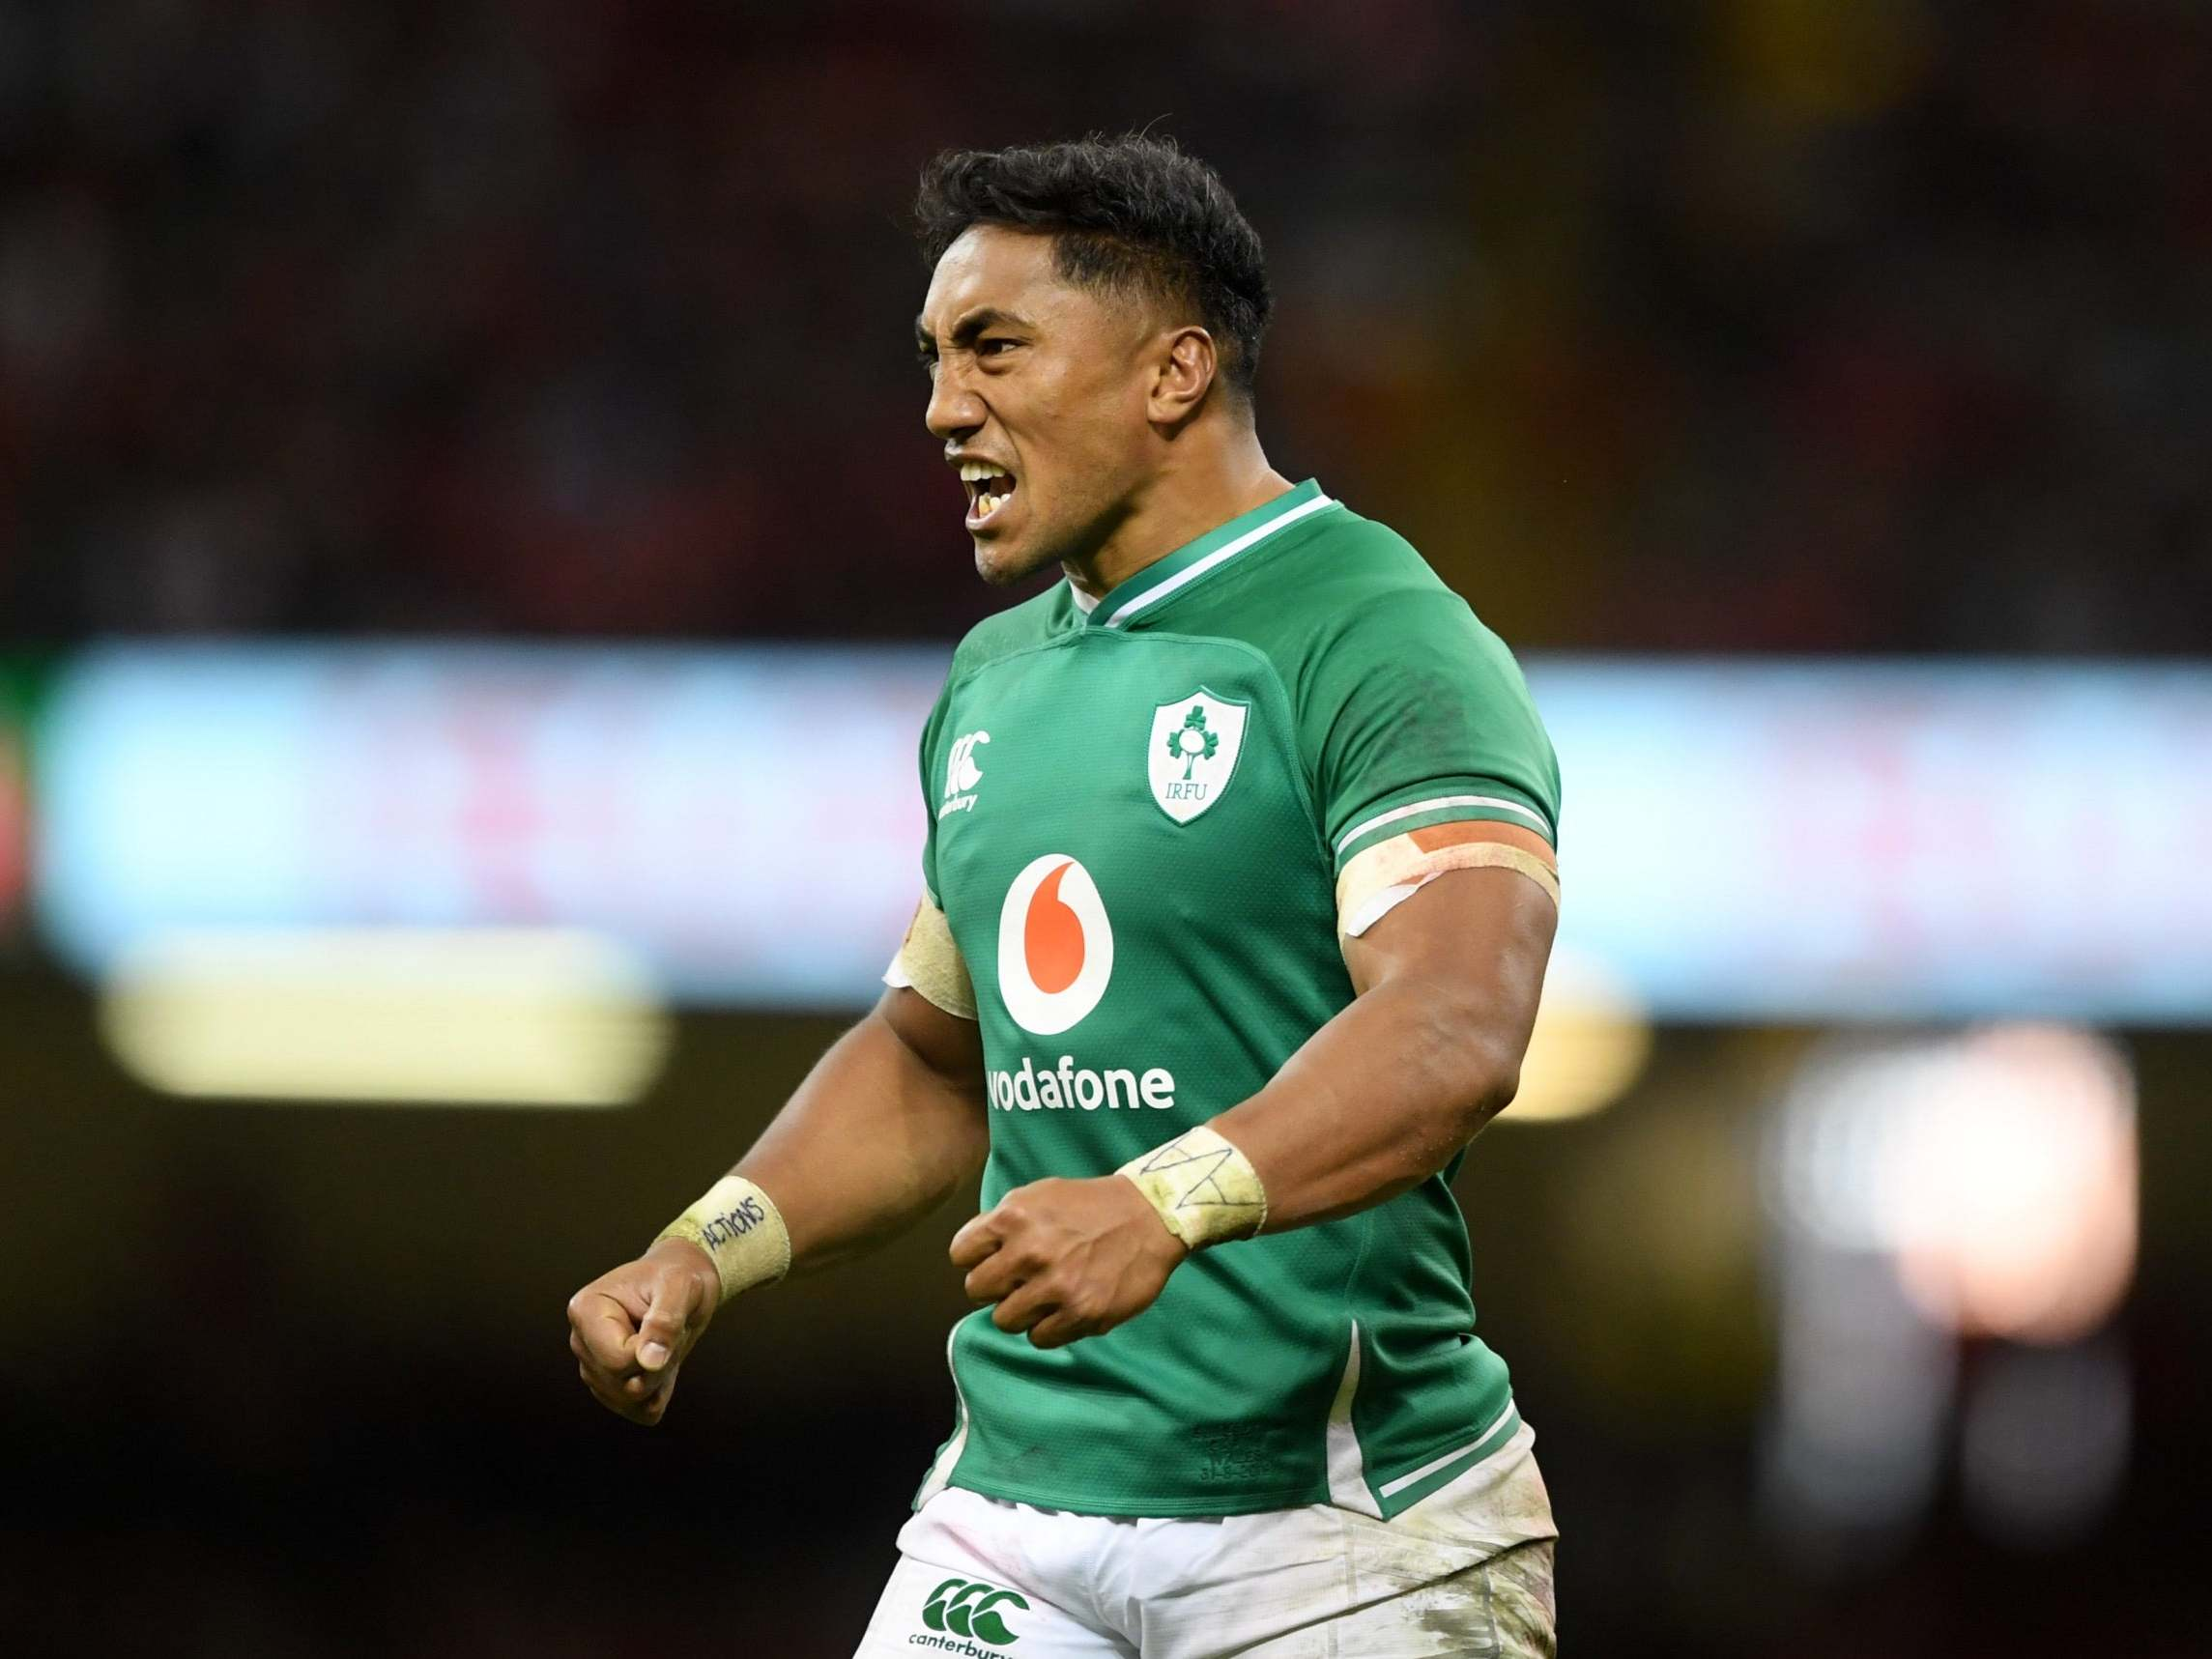 Rugby World Cup 2019: New Zealand-born Bundee Aki defends his right to play for Ireland